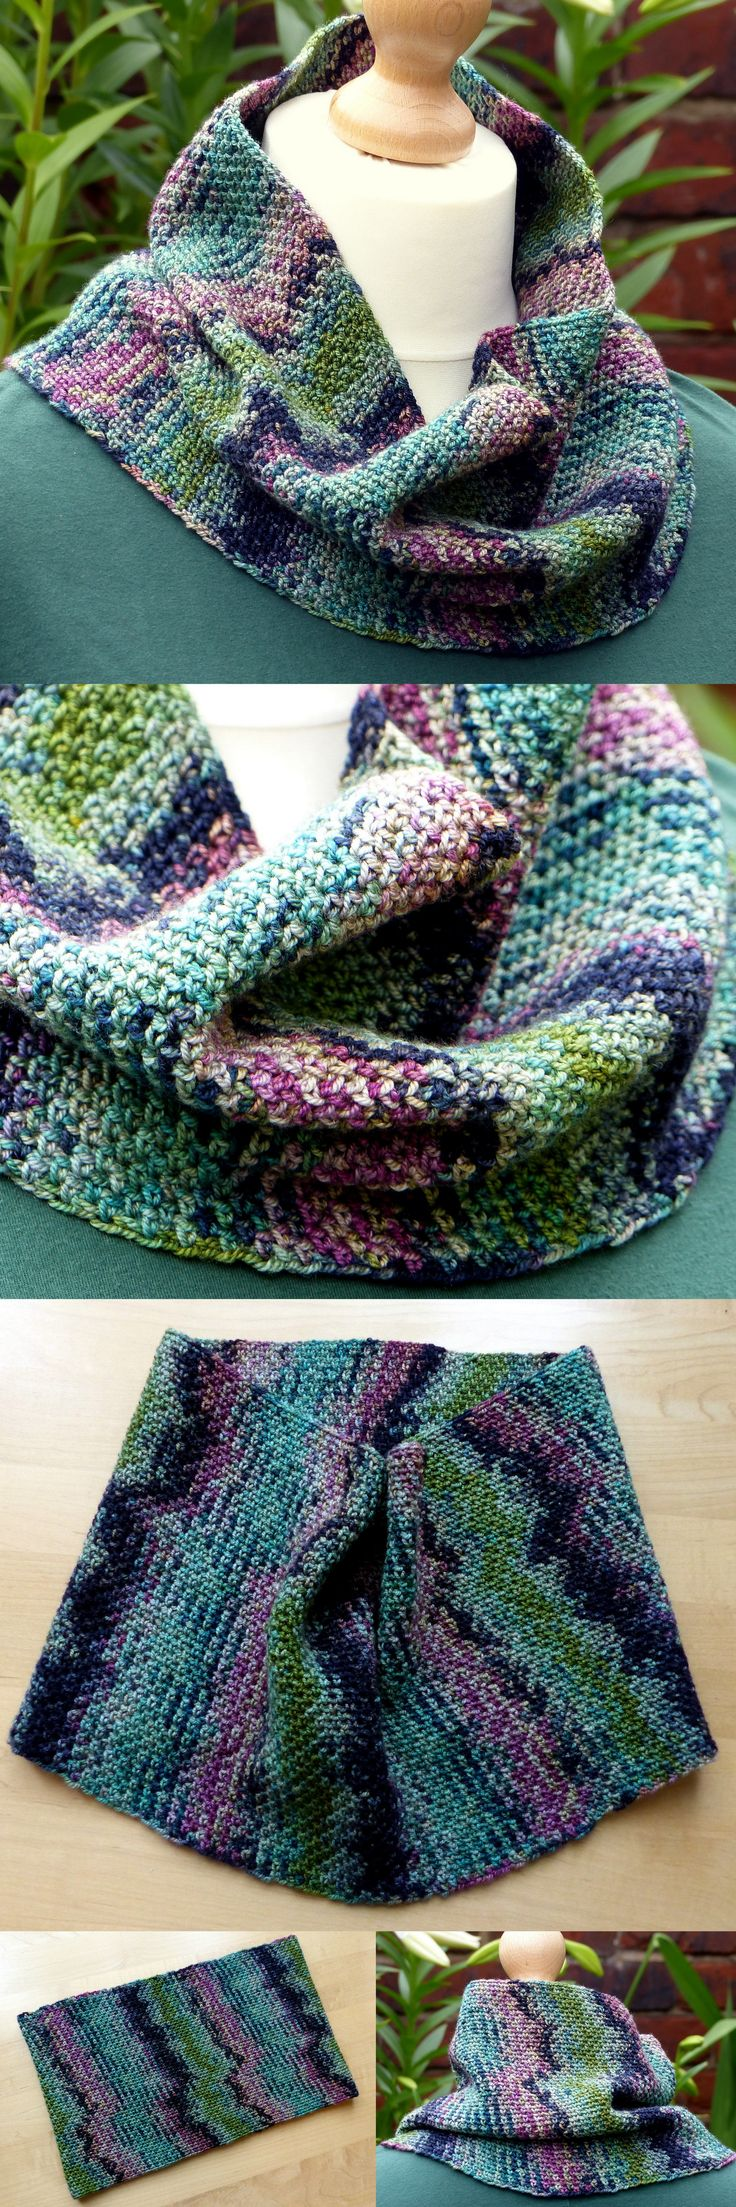 Colour Pool Cowl - Free Crochet Pattern from Make My Day Creative specifically for short colour variegated yarn. Linen Stitch.